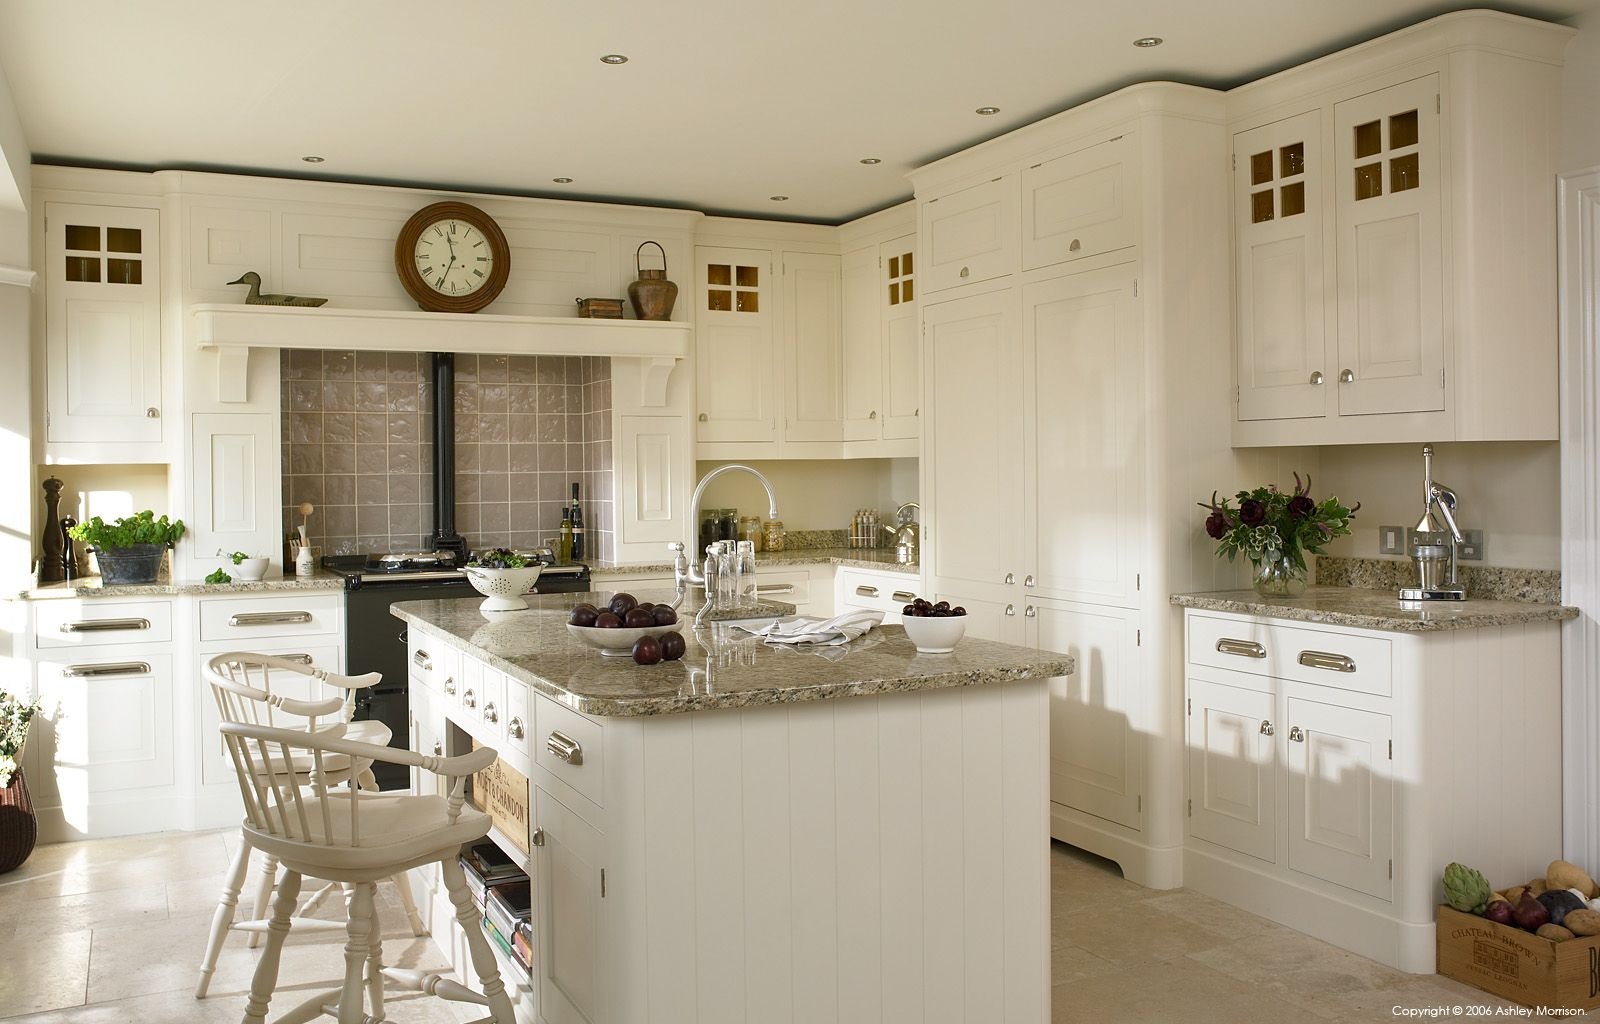 A Mark Wilkinson's 'National Trust' kitchen by Teuton